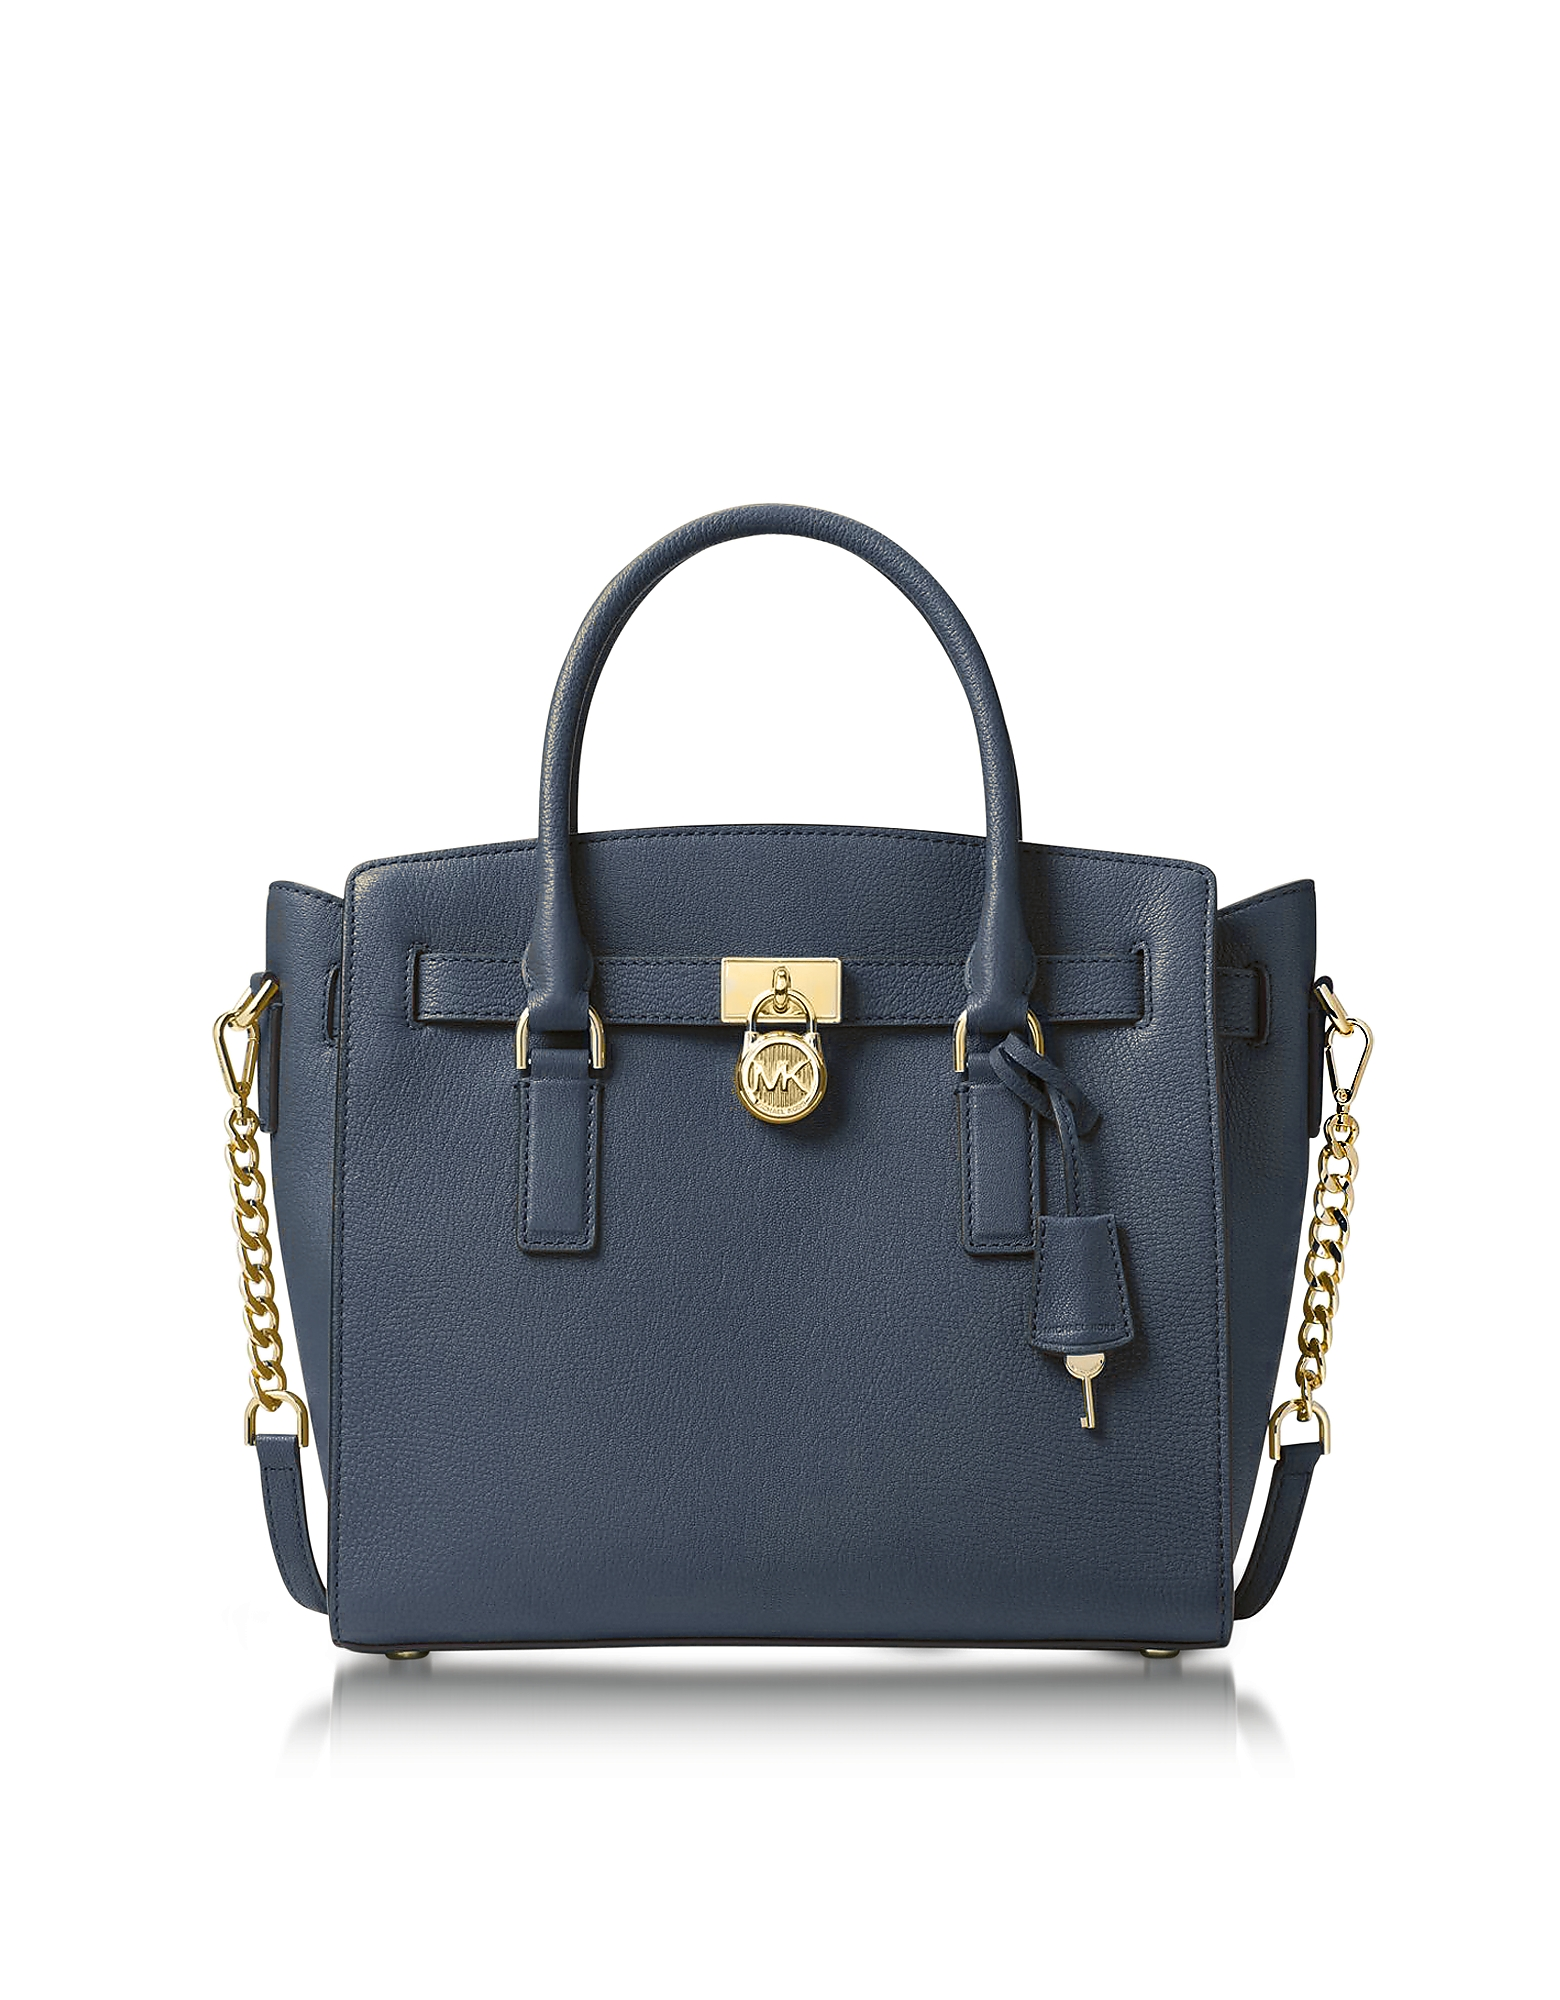 Michael Kors Handbags, Hamilton Large Admiral Blue Pebbled Leather Satchel Bag